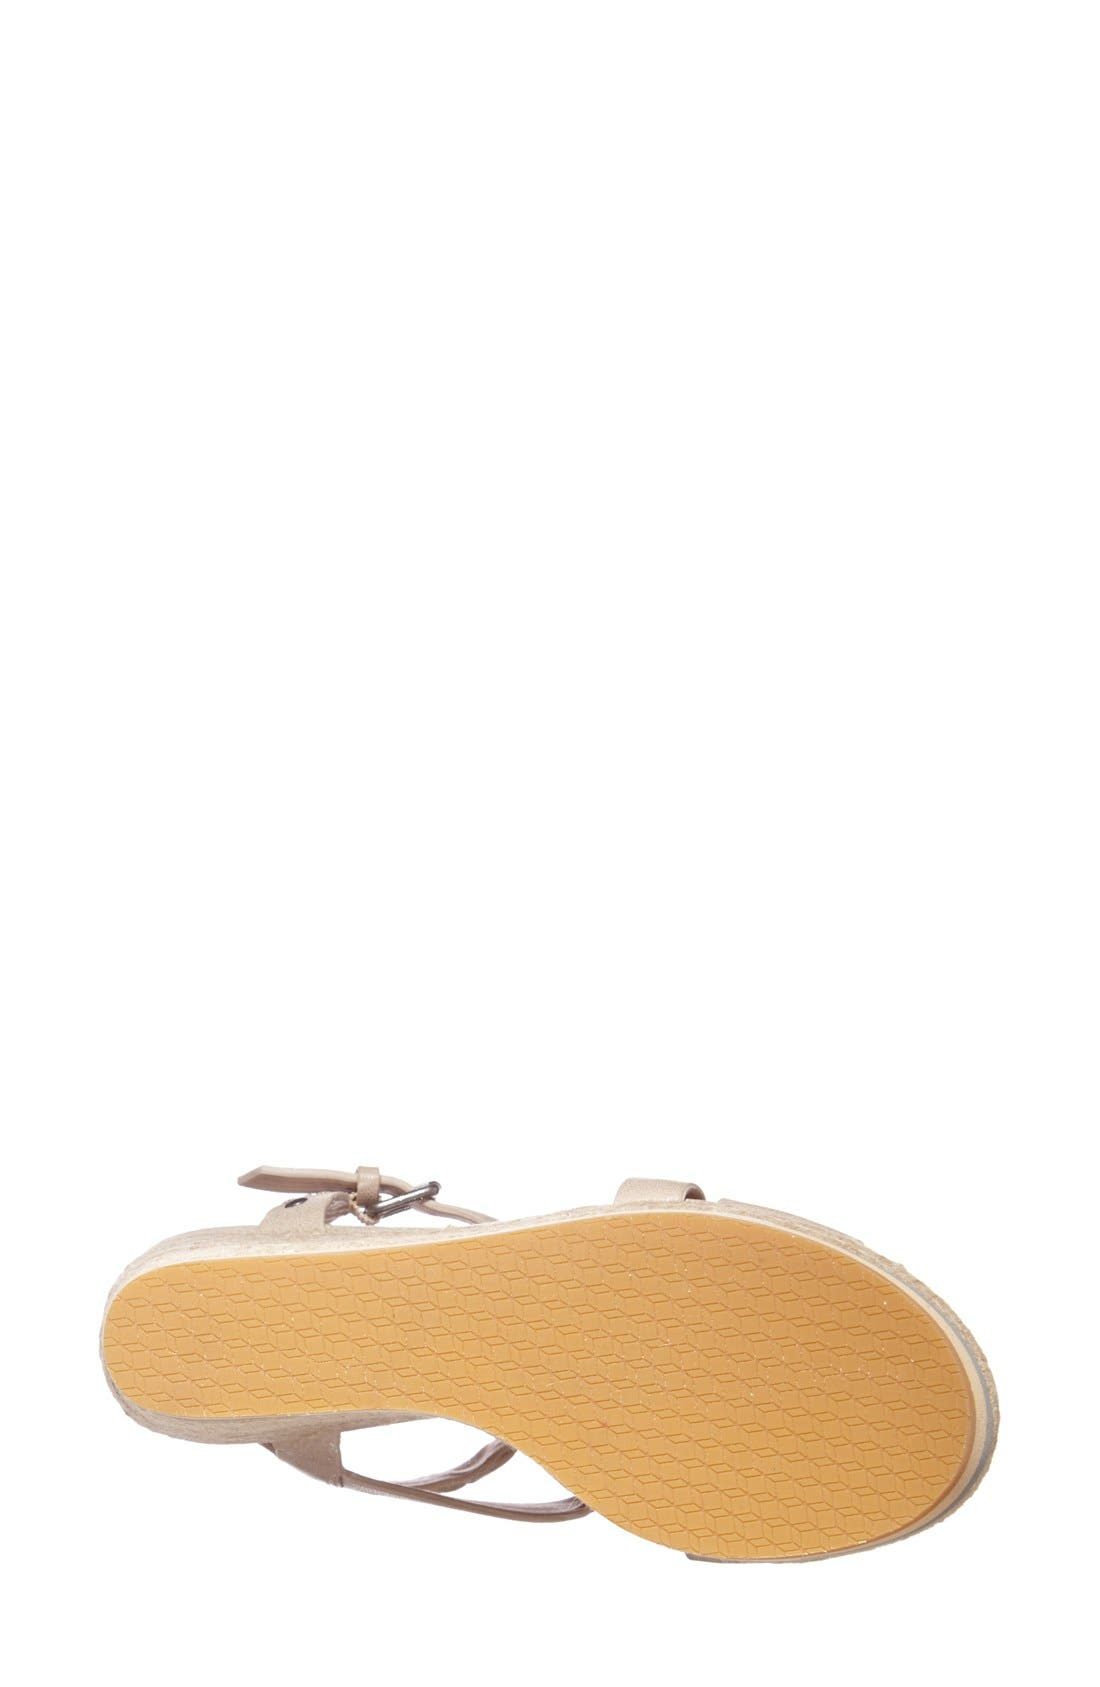 Alternate Image 4  - Joe's 'Rane' Espadrille Wedge Sandal (Women)